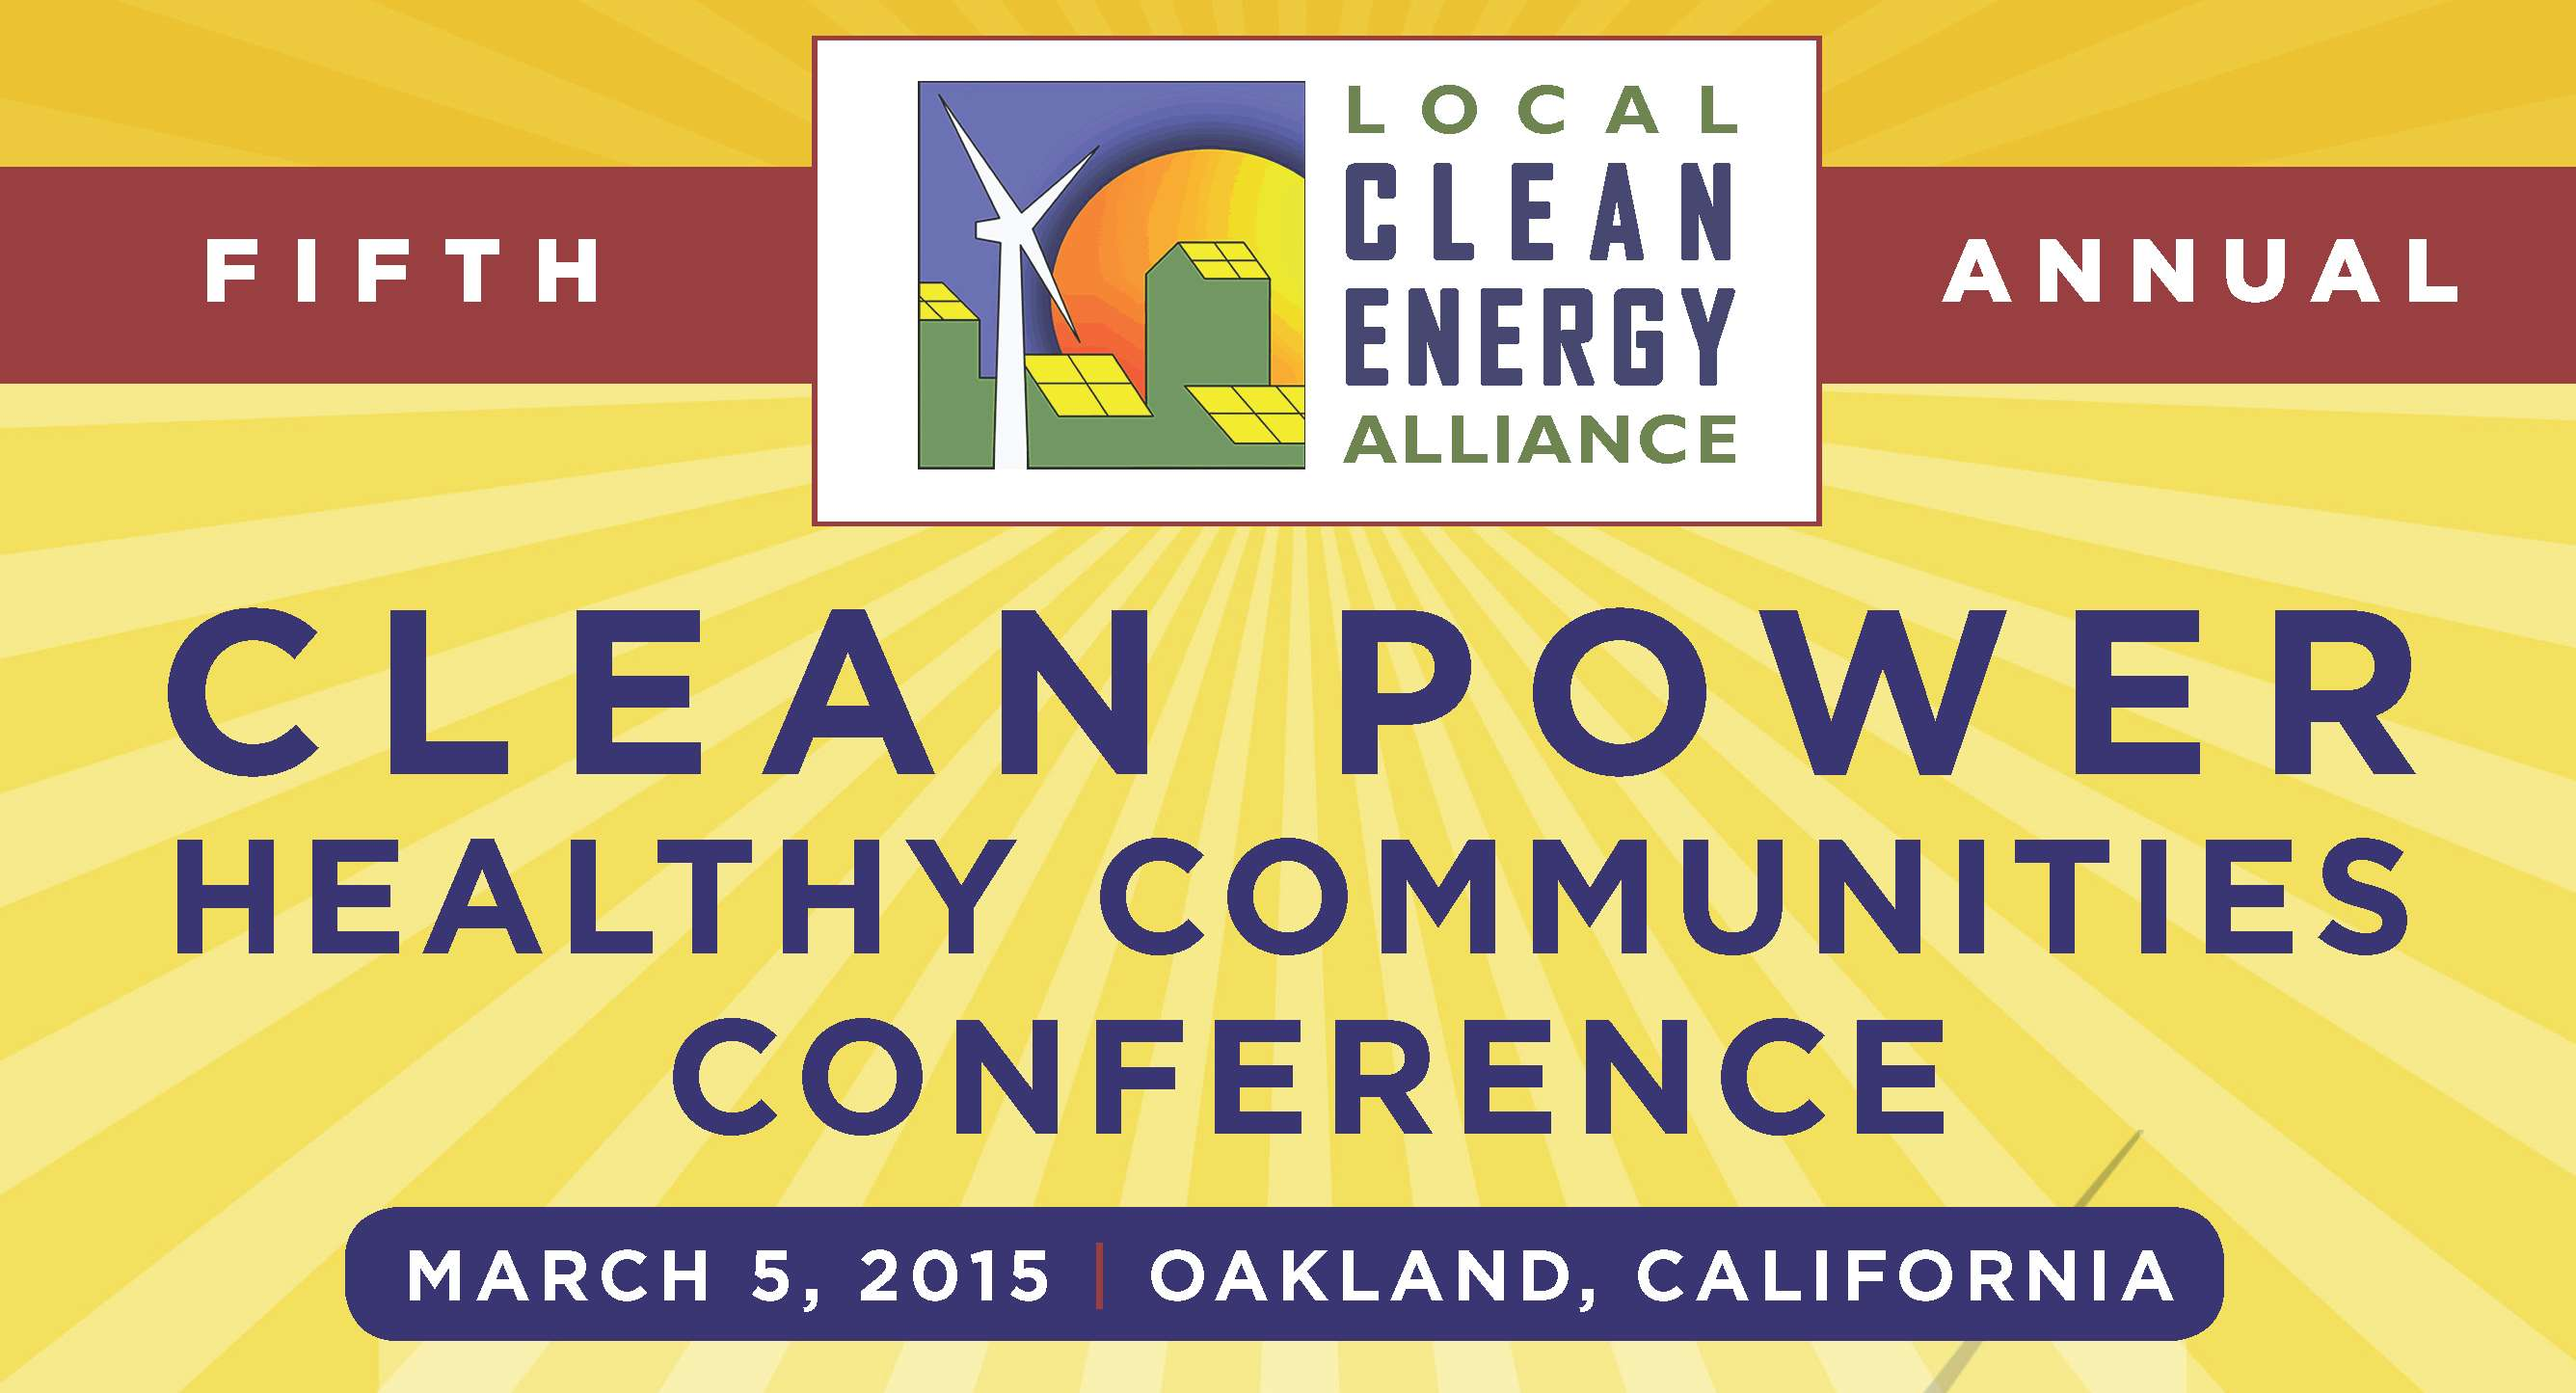 Clean Power, Healthy Communities Conference